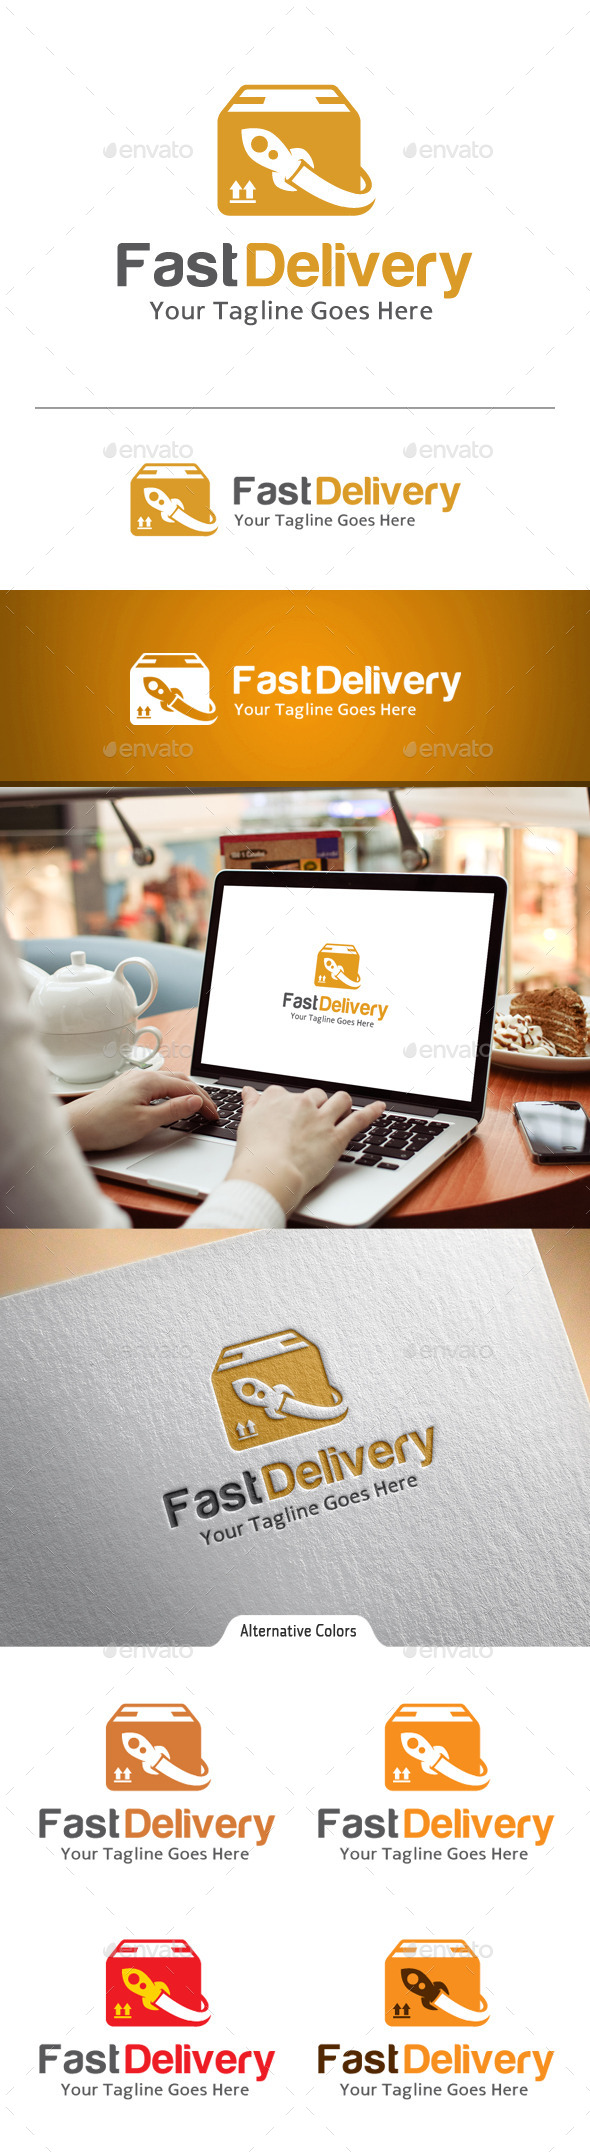 GraphicRiver Fast Delivery Logo 10860271